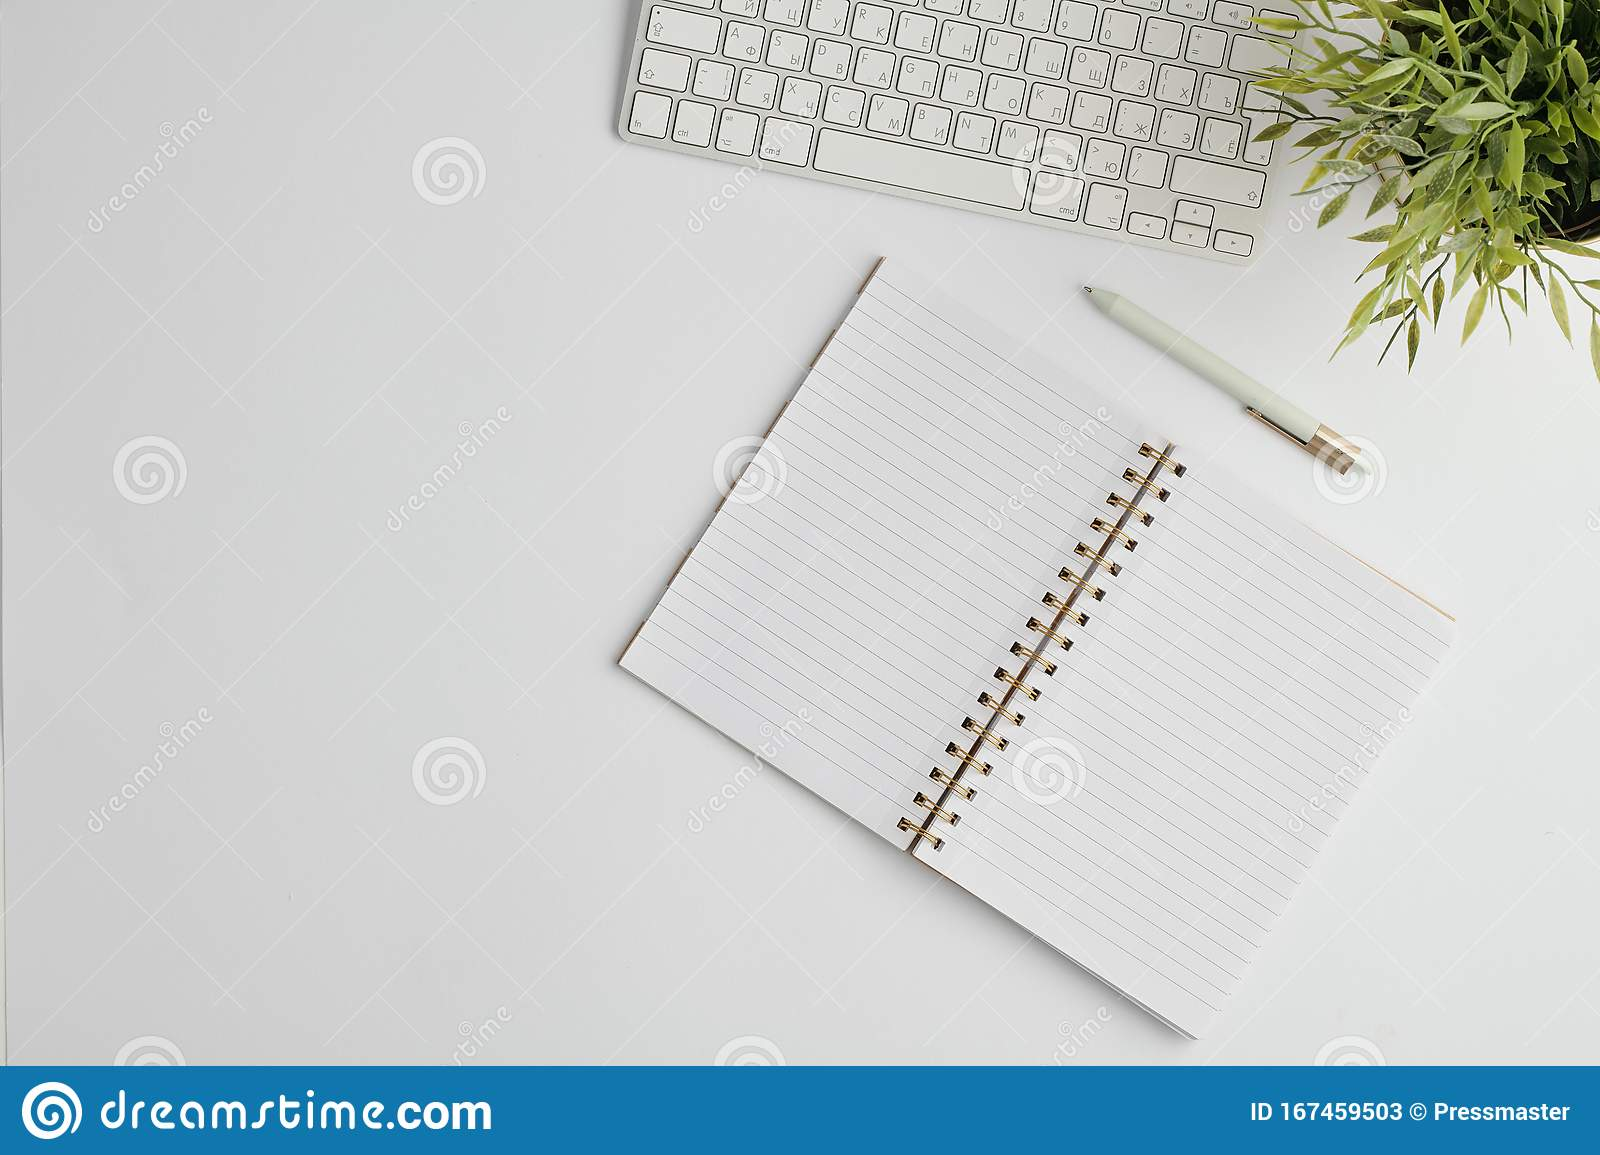 Flat Layout With Pen Computer Keypad Open Notebook With